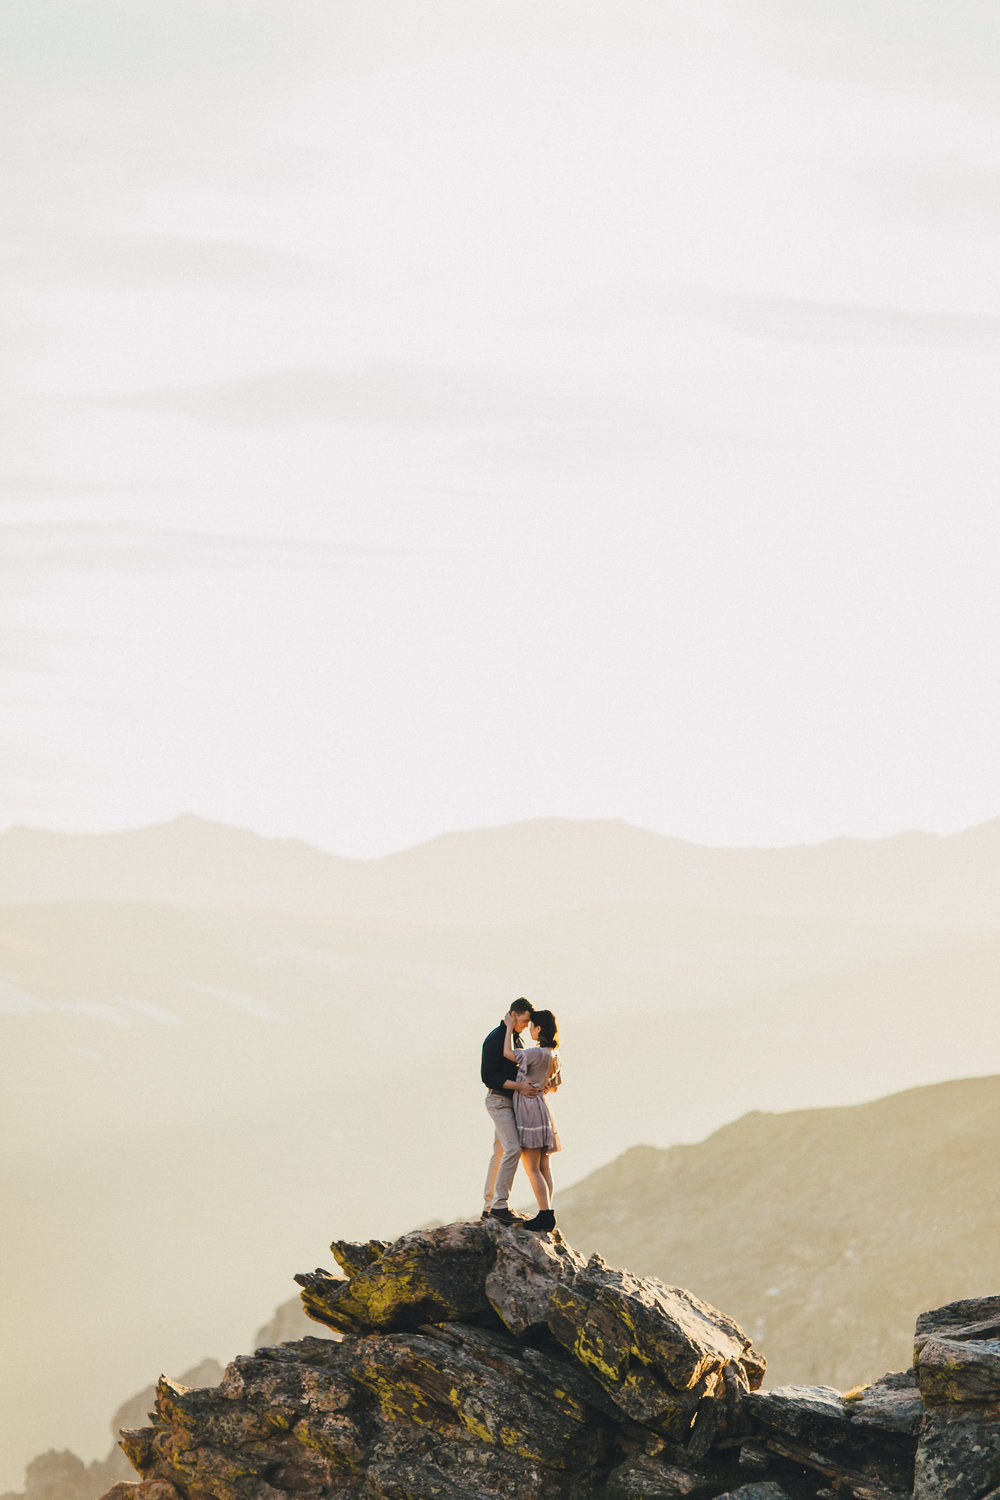 Colorado Rockies Engagement Photography by Boris Zaretsky _B2C2249 copy.jpg